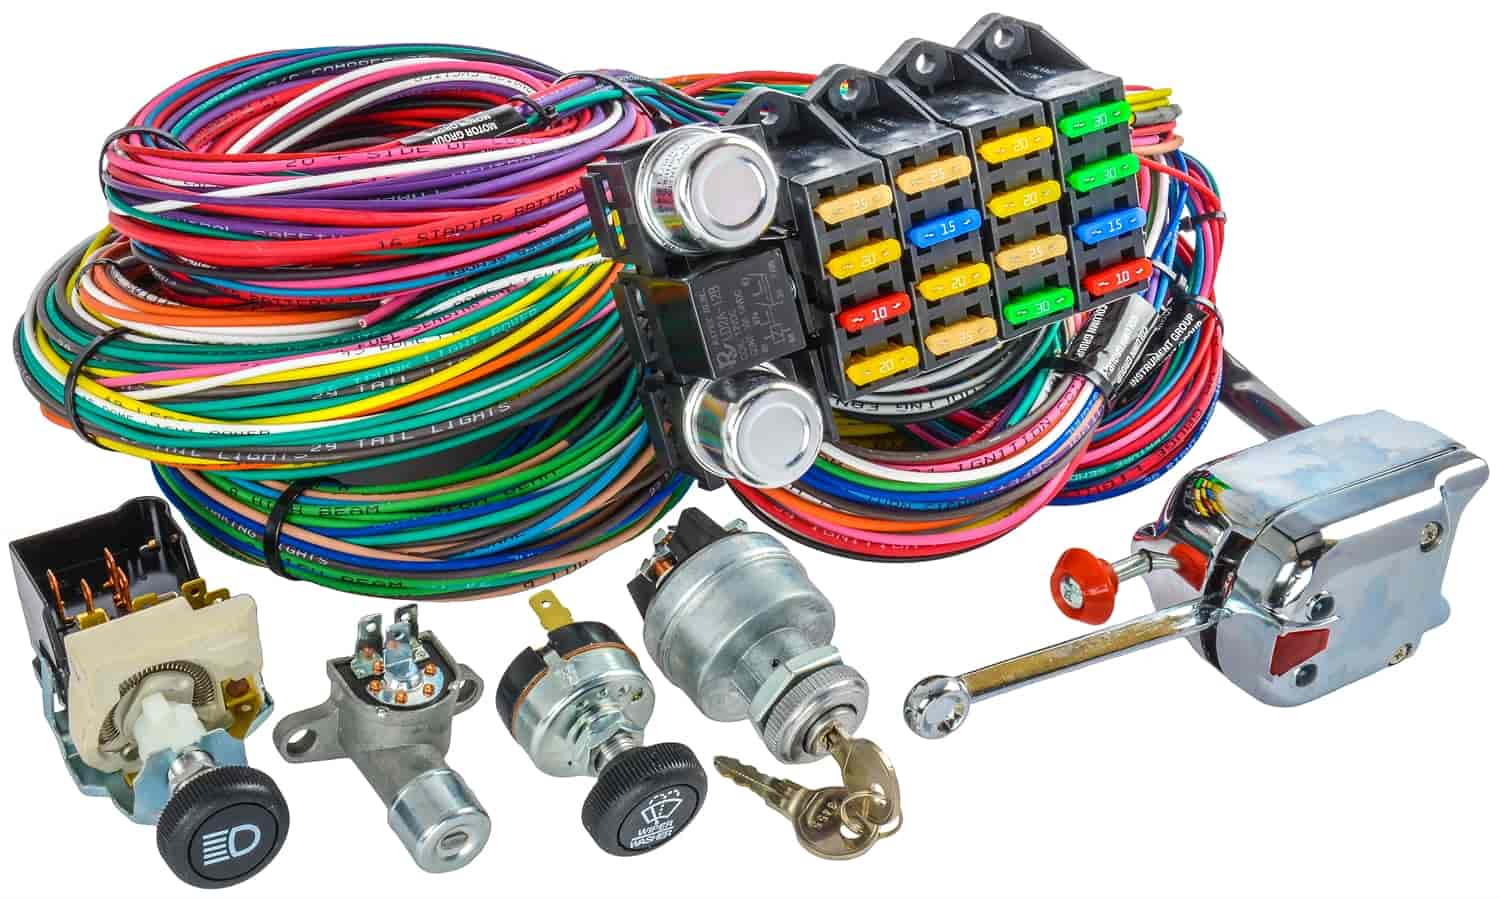 555 10405k jegs performance products 10405k universal wiring harness universal wiring harness kits at eliteediting.co